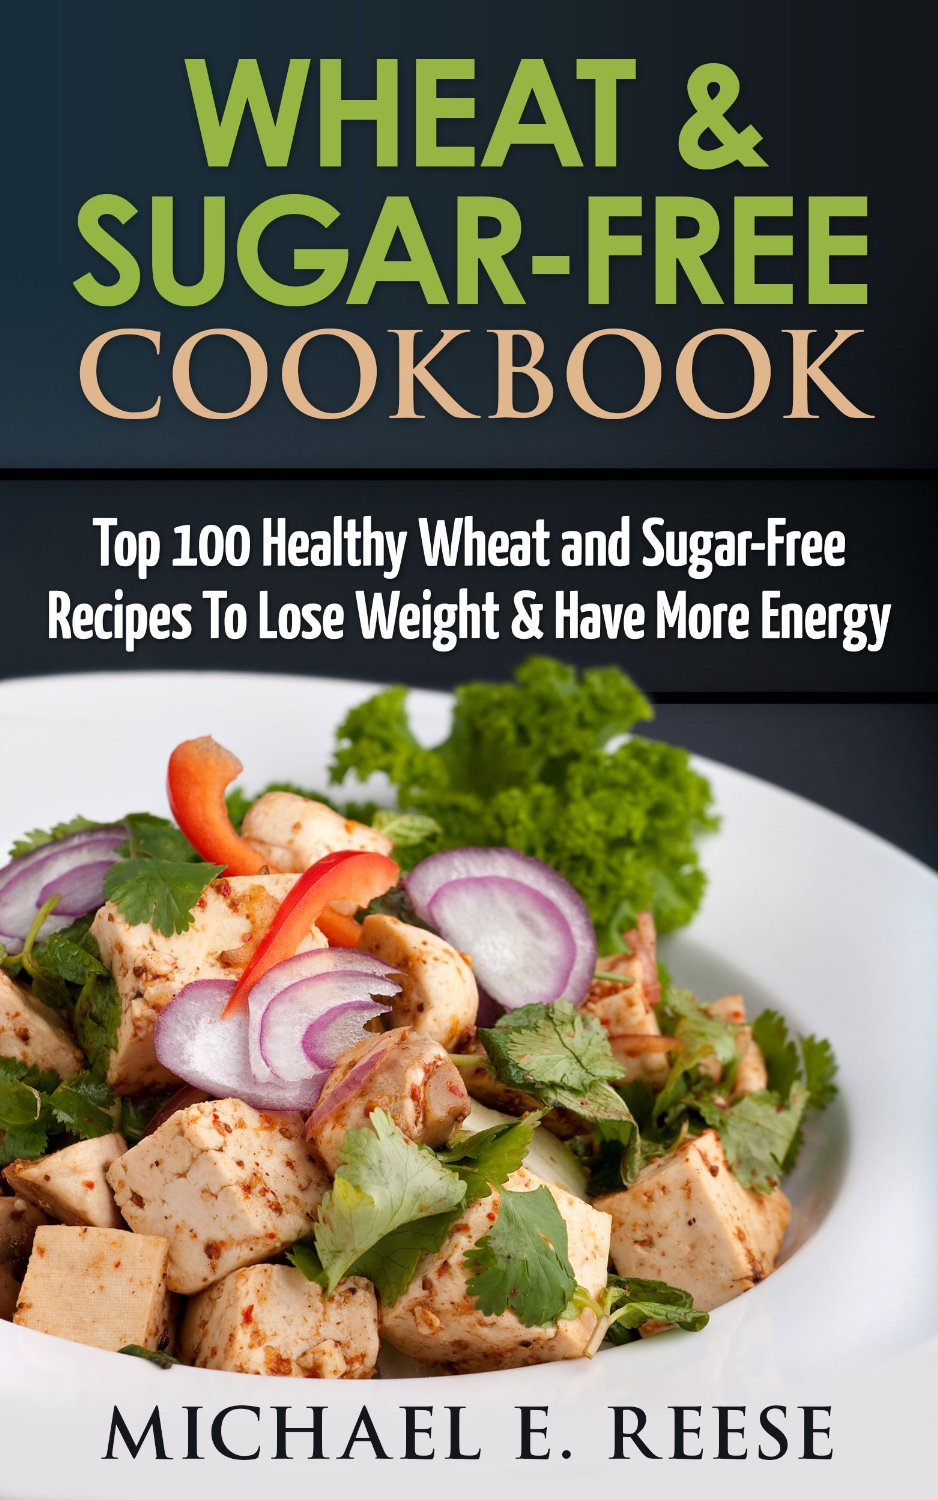 Wheat & Sugar-Free Cookbook: Top 100 Healthy Wheat and Sugar-Free Recipes To Lose Weight & Have More Energy free download